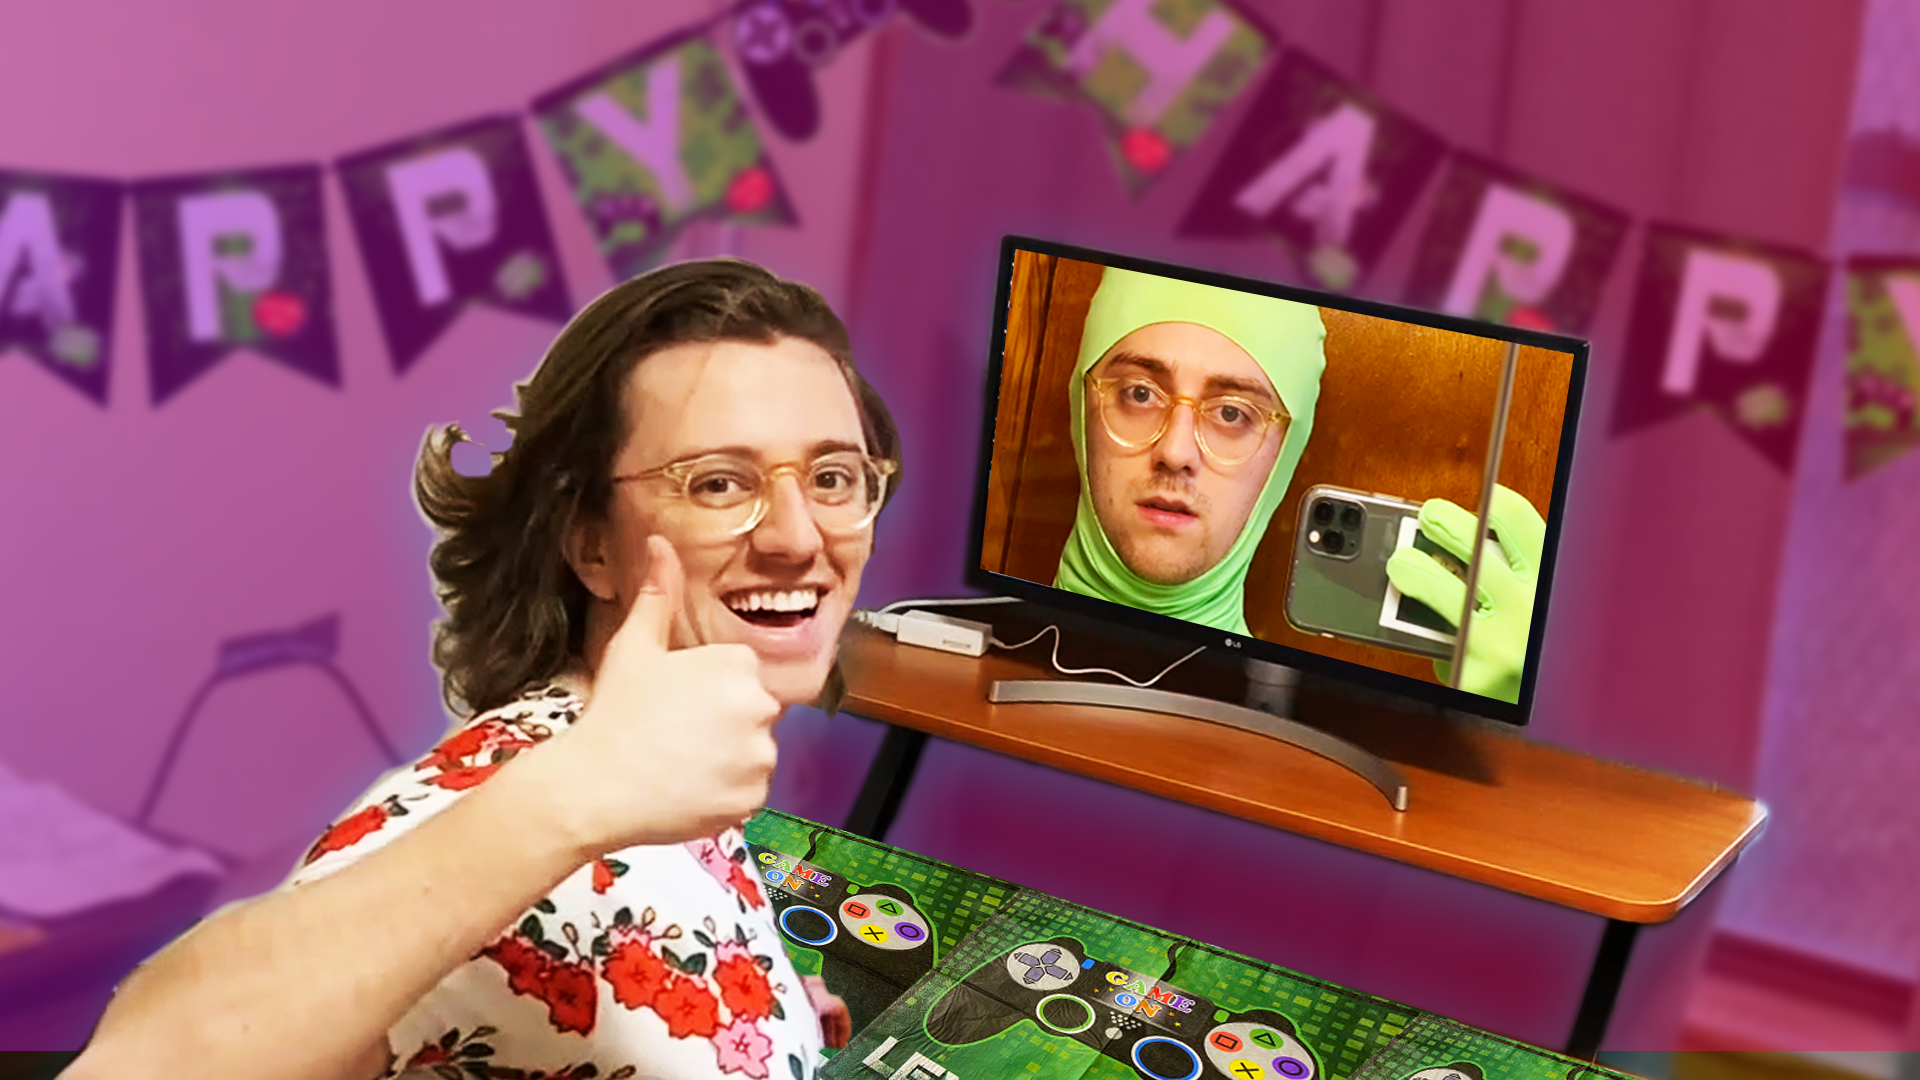 Brian David Gilbert gives a thumbs up while he sits at a desk covered in a video game themed tablecloth. On the monitor is another picture of Brian wearing a green screen suit